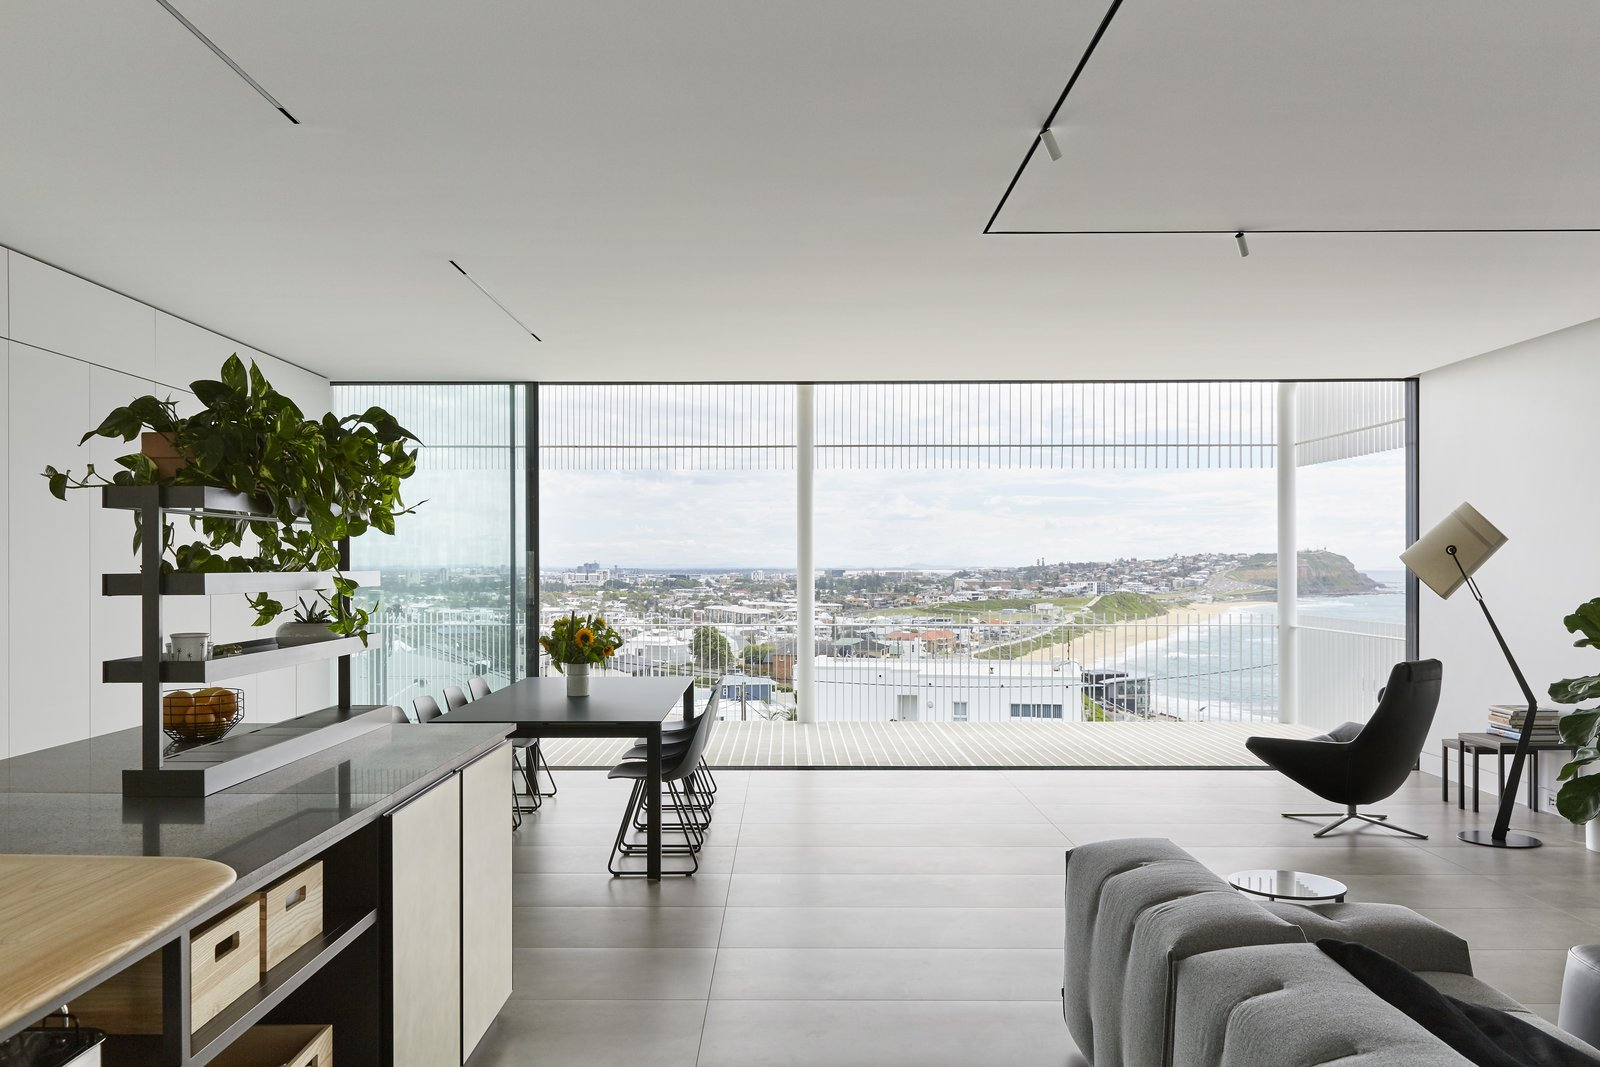 Dining Room, Chair, Table, Ceiling Lighting, and Floor Lighting A transparent balcony allows unobstructed views of the sea and Newcastle's skyline.  Best Photos from A Futuristic Abode in Australia Draws Inspiration From Star Wars